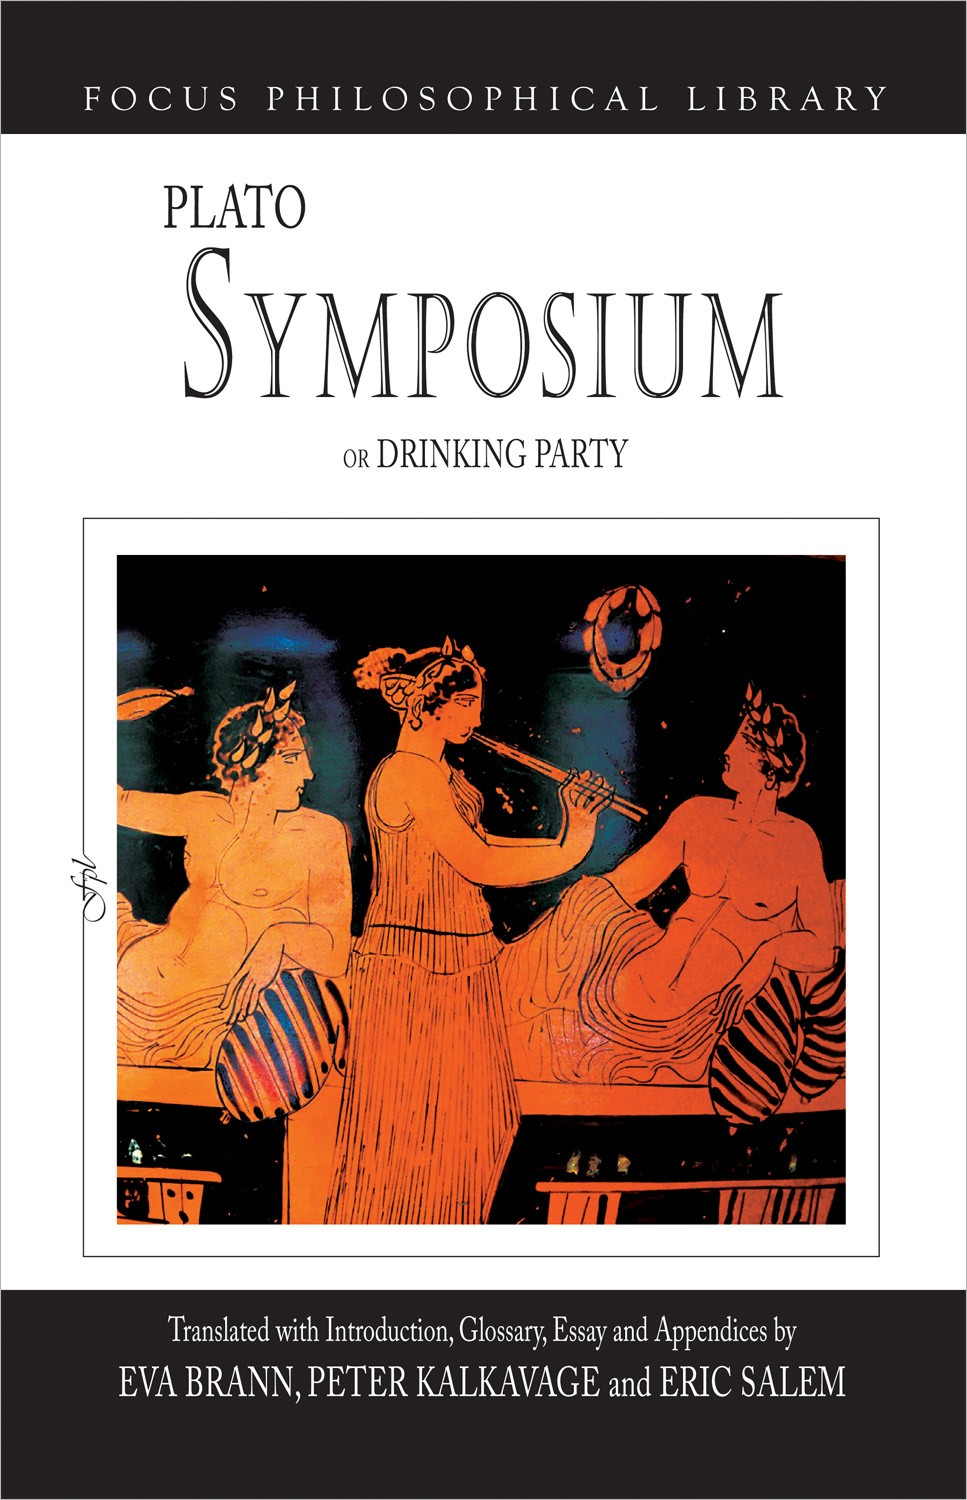 the accounts of eros in the symposium by plato And eros in plato's symposium  egocentric accounts of eros  understanding of the relationship between poverty and eros provides the foundation for.